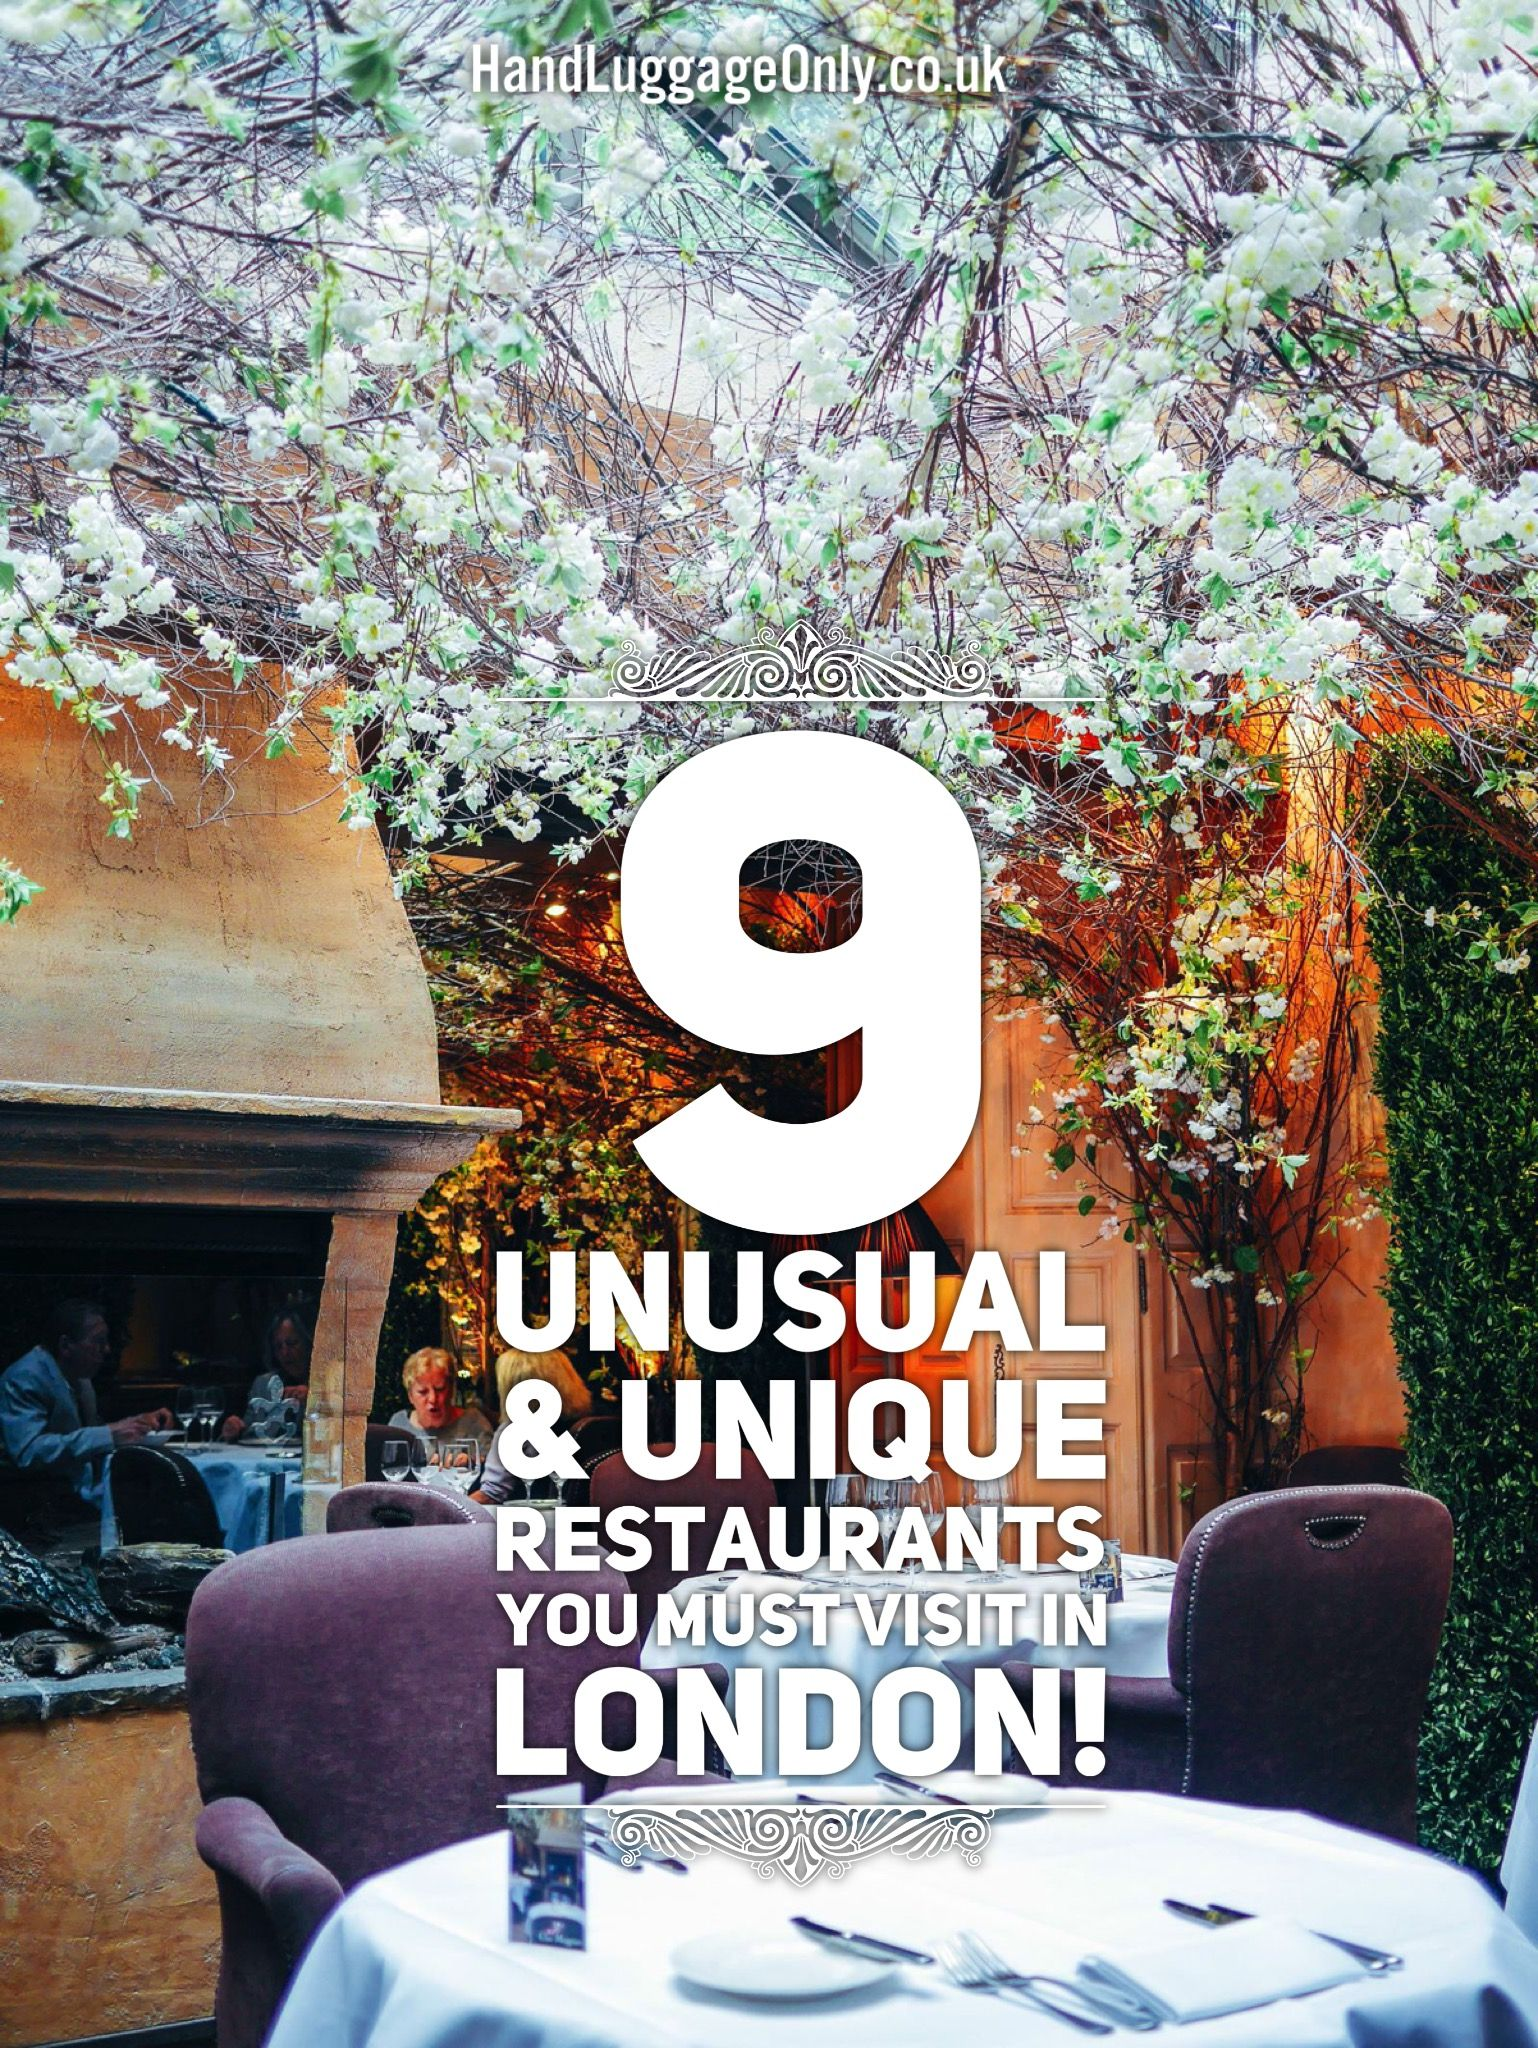 9 Unusual And Unique Restaurants You Have To Try In London! - Hand Luggage Only - Travel, Food & Home Blog